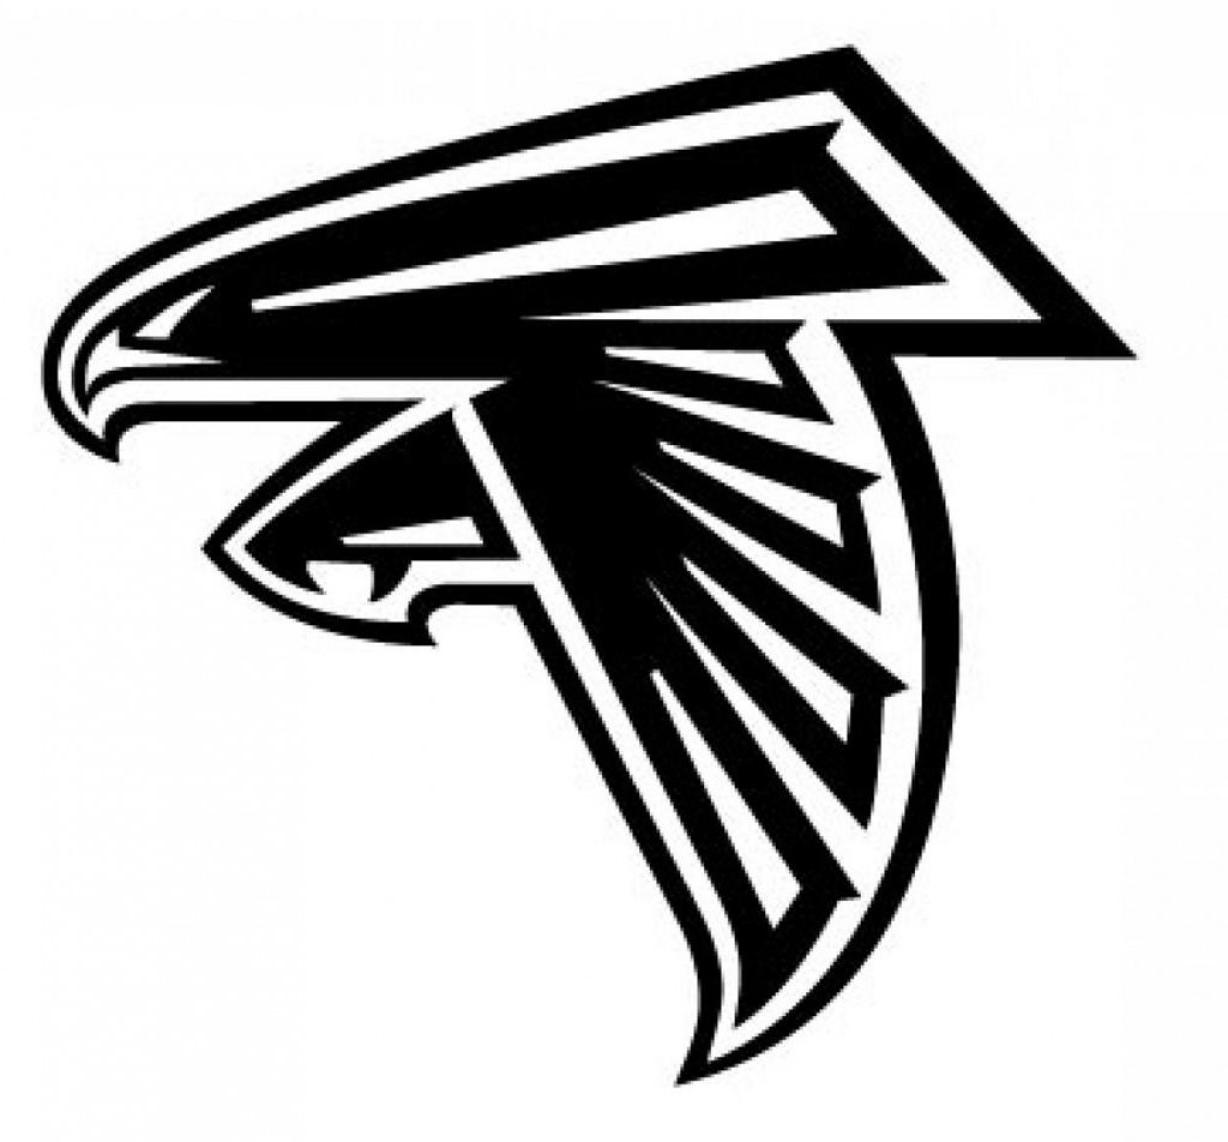 Atlanta falcons logo clipart svg royalty free stock Best 15 Top Atlanta Falcons Logo Printable Vector Photos Library svg royalty free stock